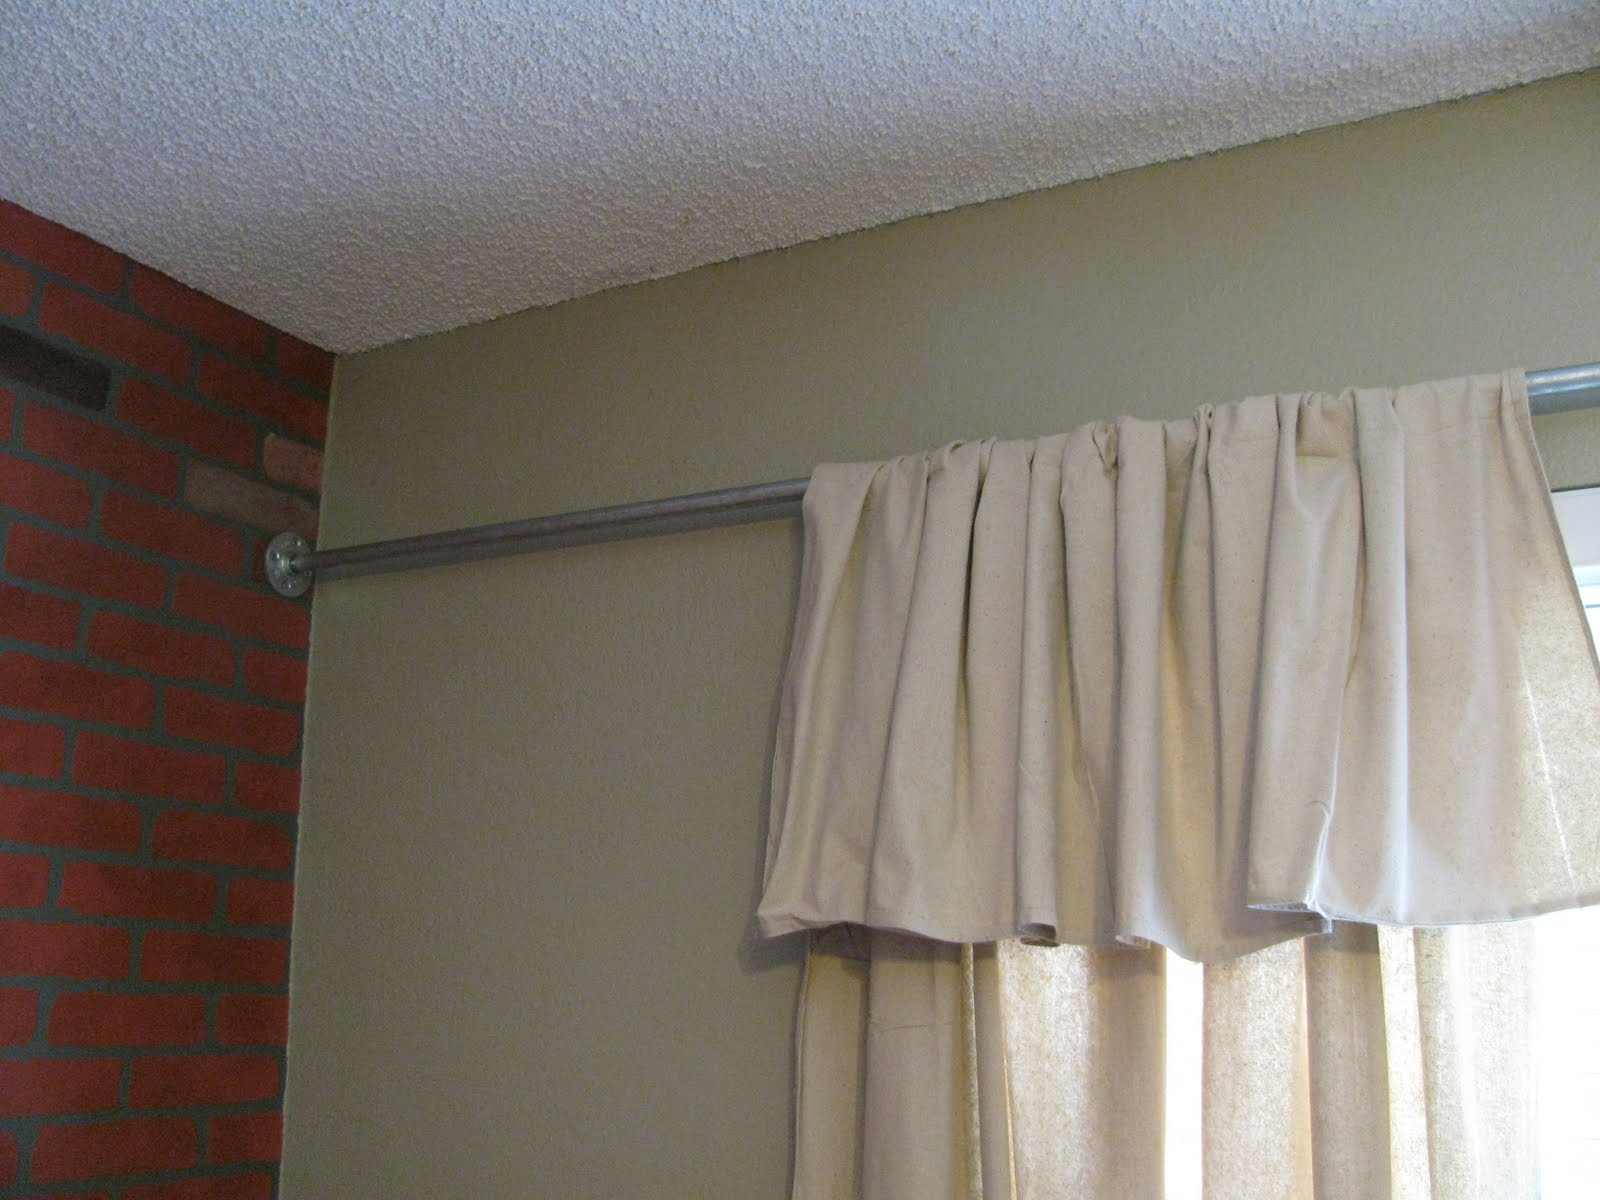 Removable Shower Curtain Rod Twist and Fit Curtain Rod